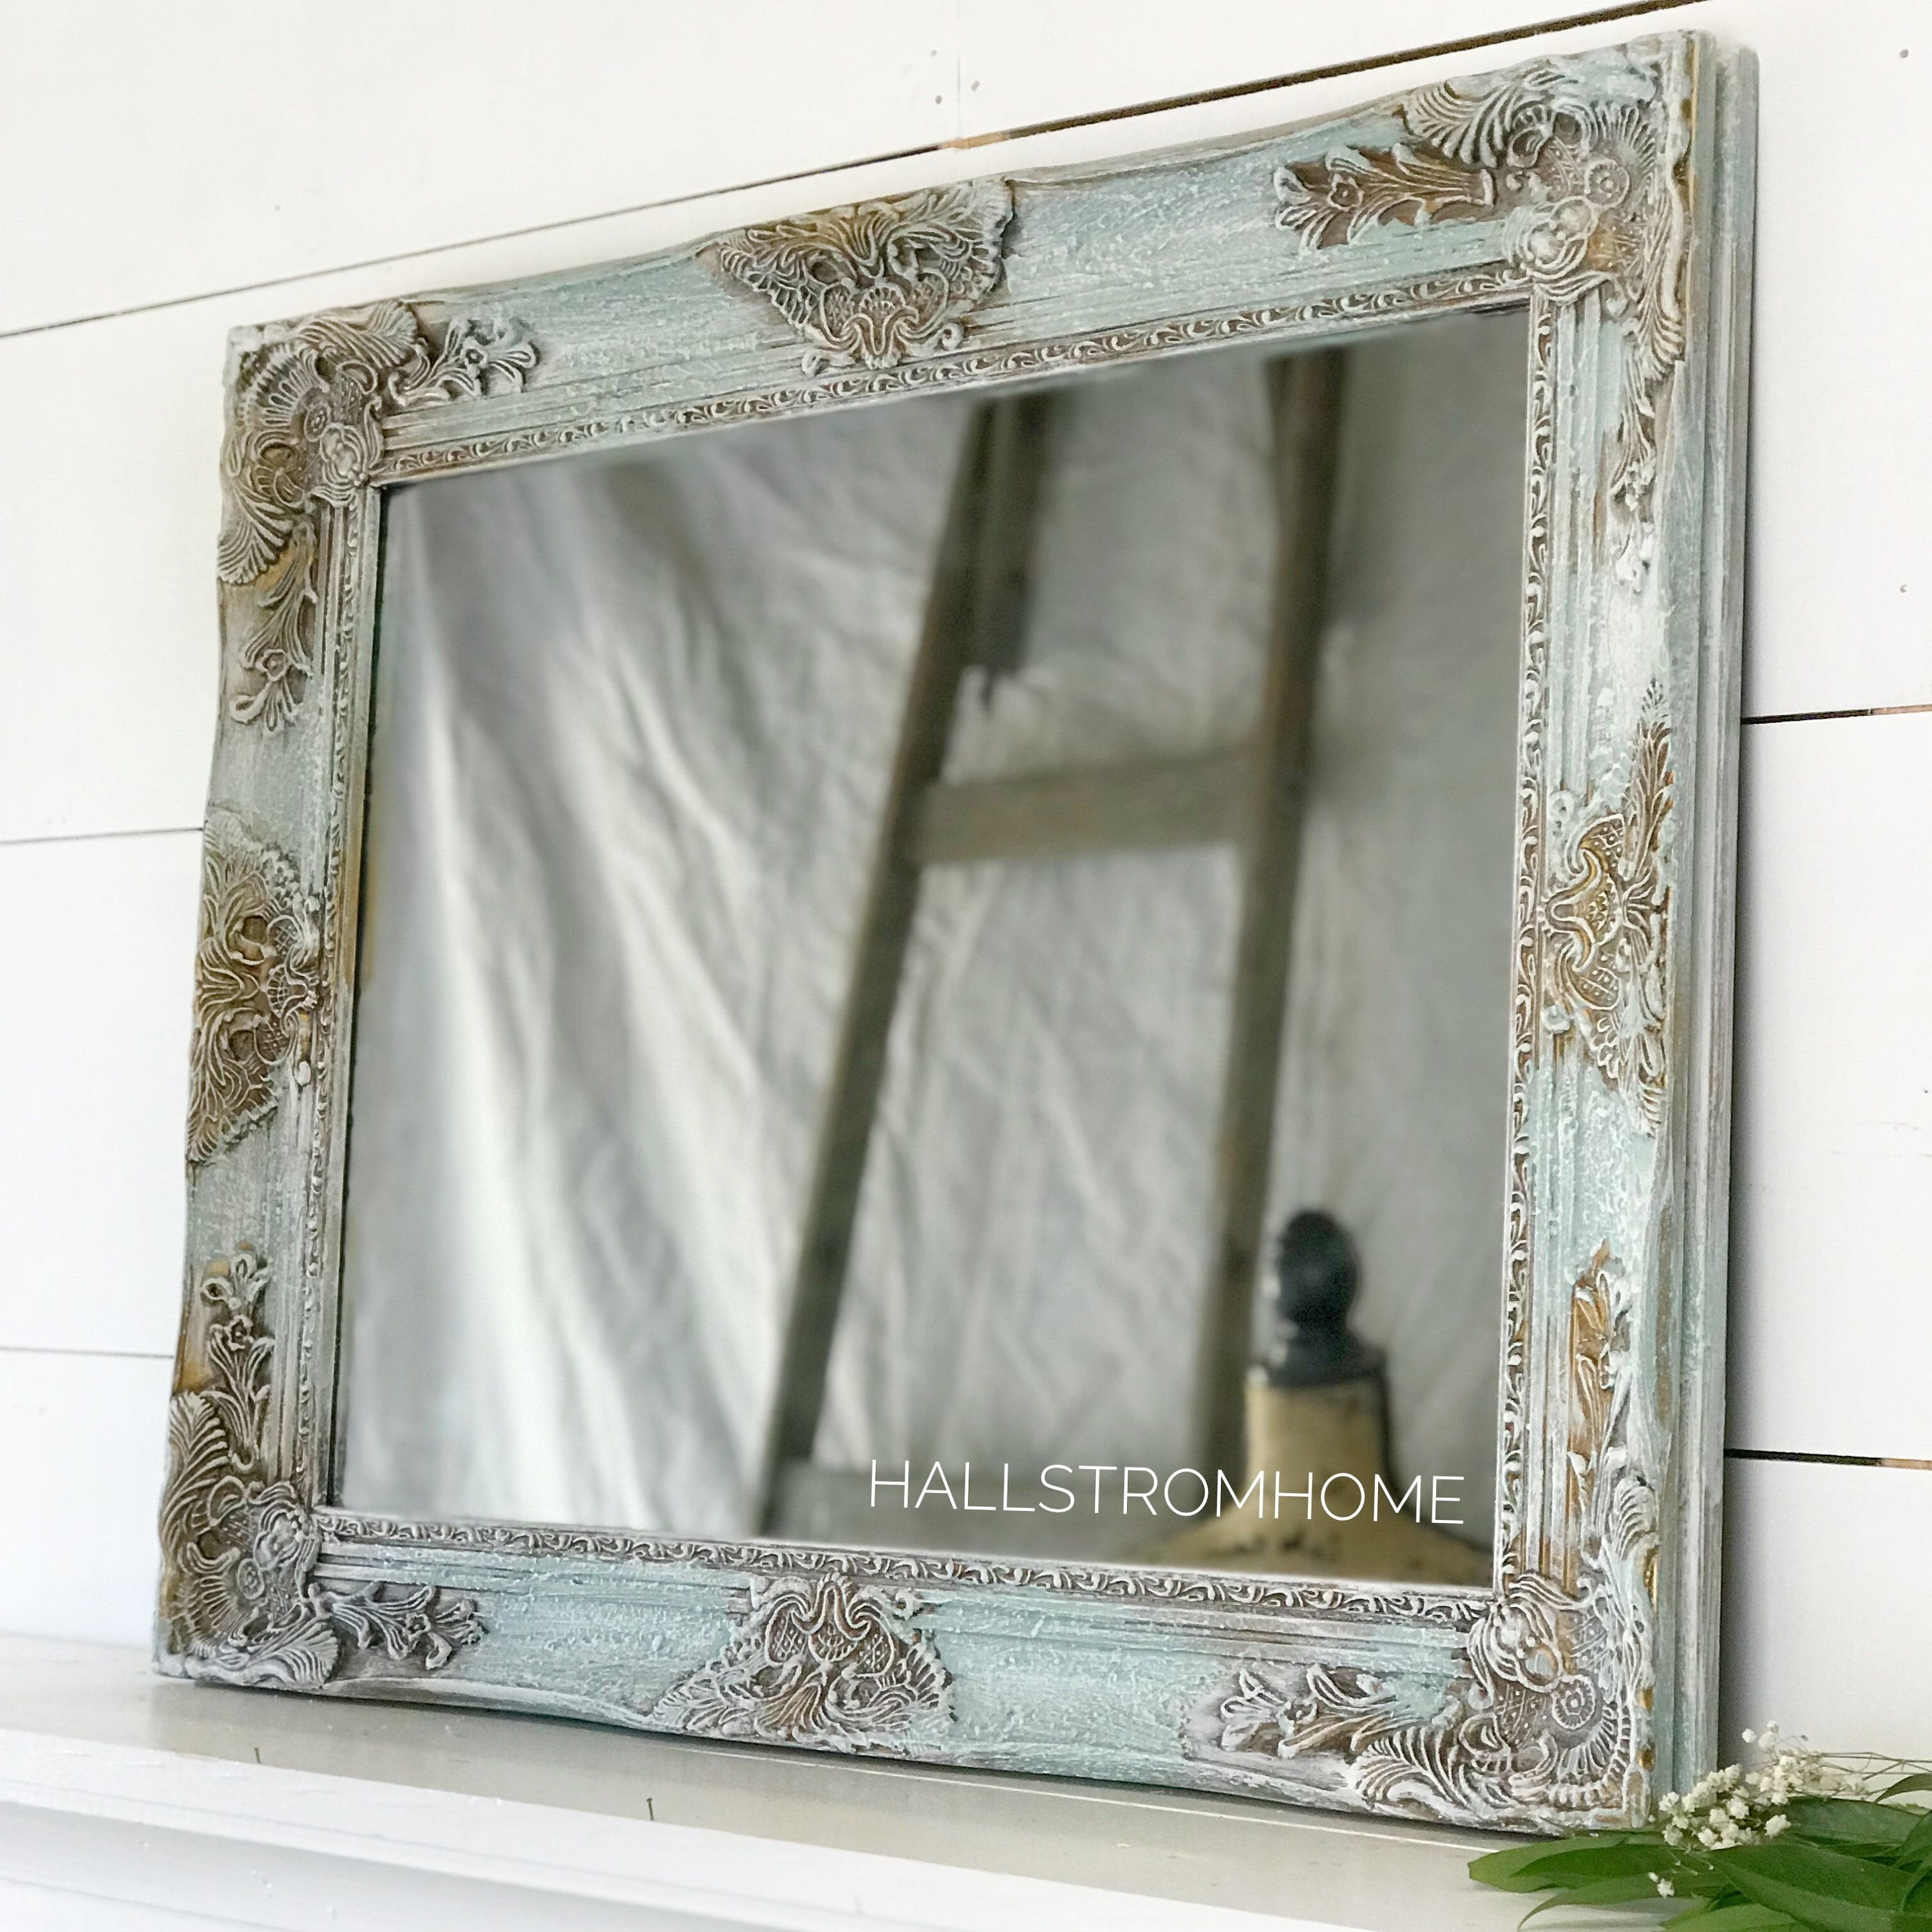 French Shabby Chic Wall Mirror Blue Wood Framed Bathroom Etsy In 2021 Wood Framed Bathroom Mirrors Antique Vanity Mirrors Shabby Chic Mirror Wall [ 3000 x 3000 Pixel ]